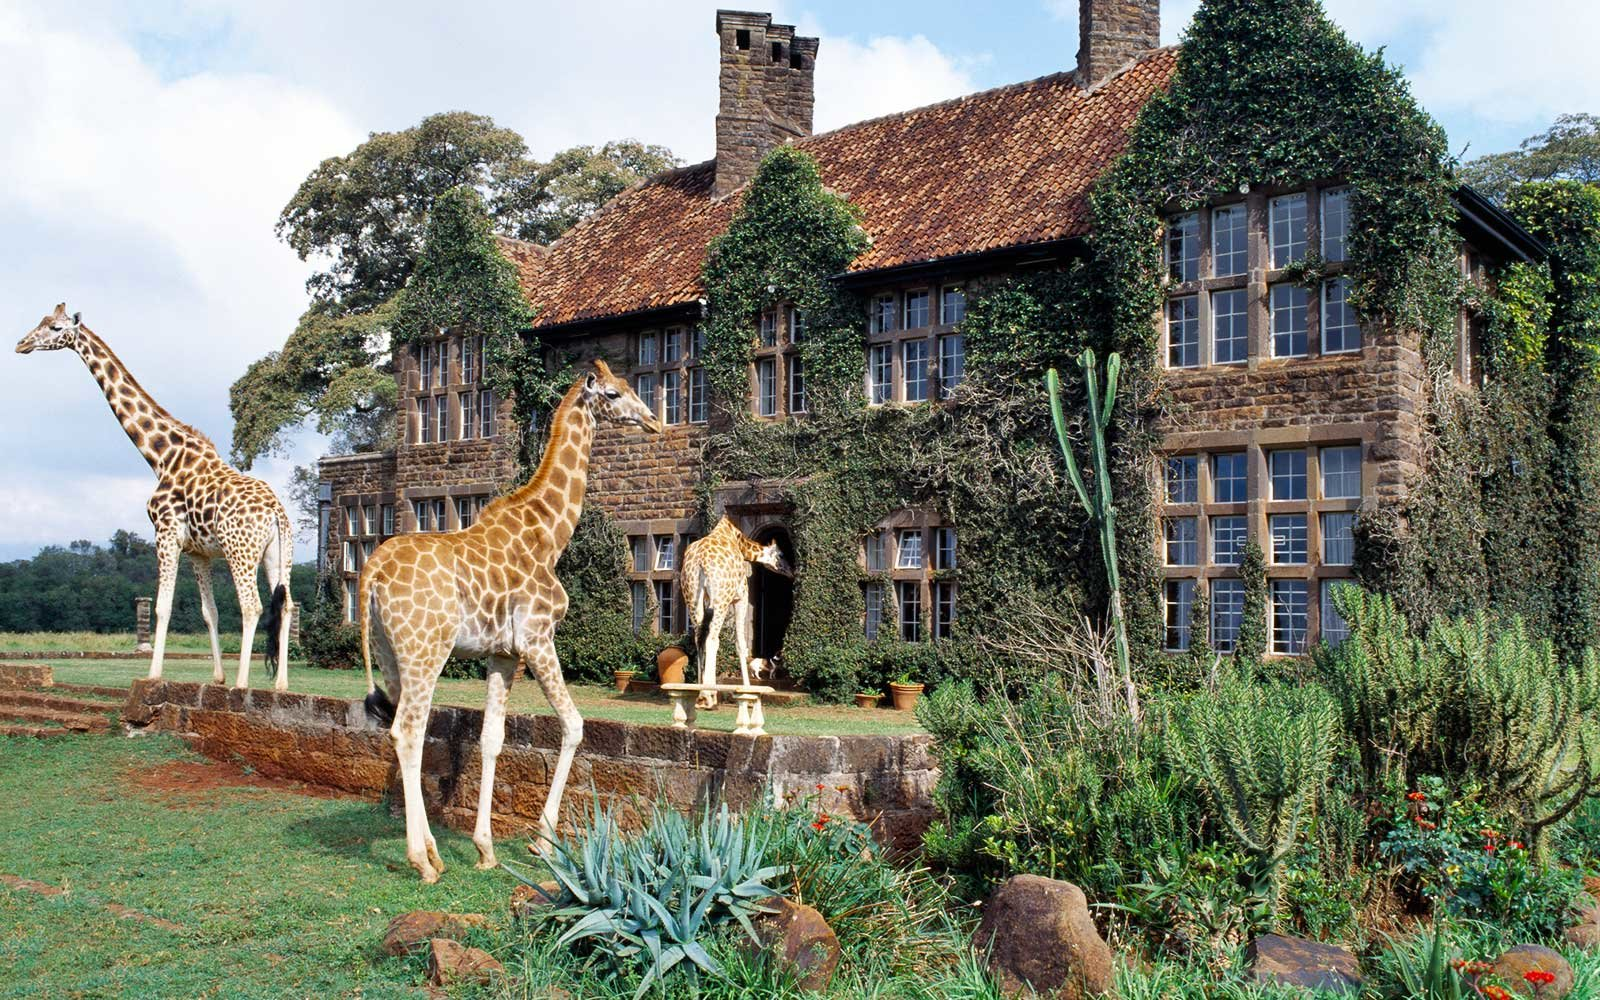 Rothschild giraffes at The Giraffe Manor on the outskirts of Nairobi